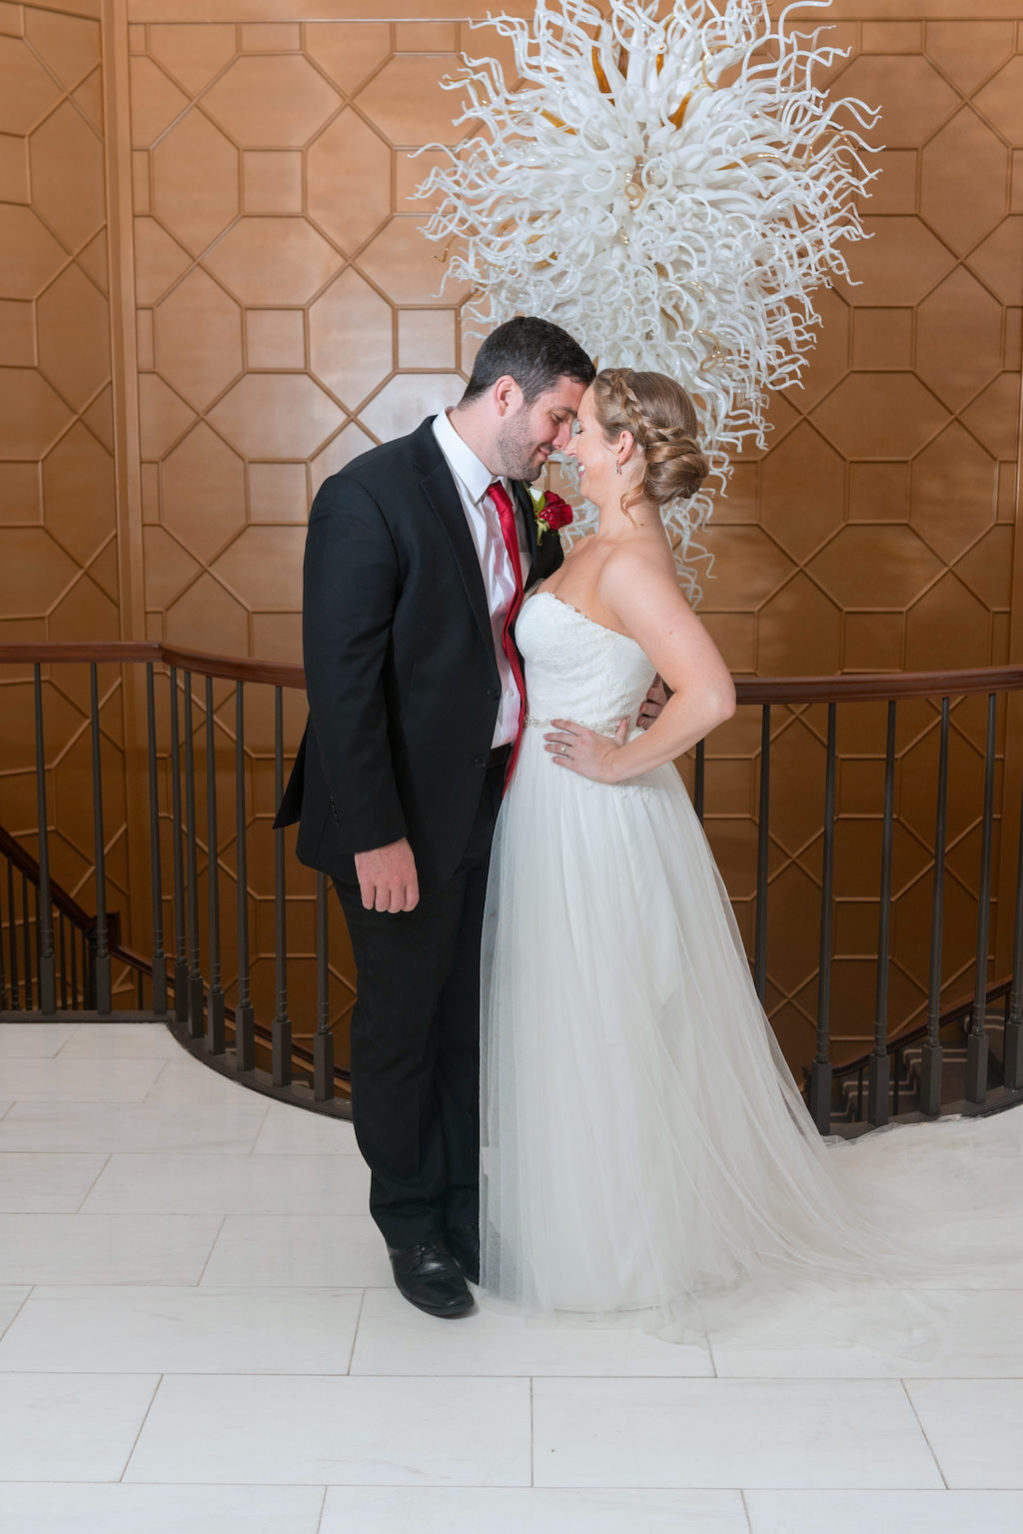 Indoor Wedding Portrait with Glass Chandelier, Bride in Strapless A Line Maggie Sottero Dress, Groom with Red Tie and Red Rose Boutonniere | Tampa Bay Wedding Photographer Carrie Wildes Photography | Downtown Wedding Venue The Tampa Club